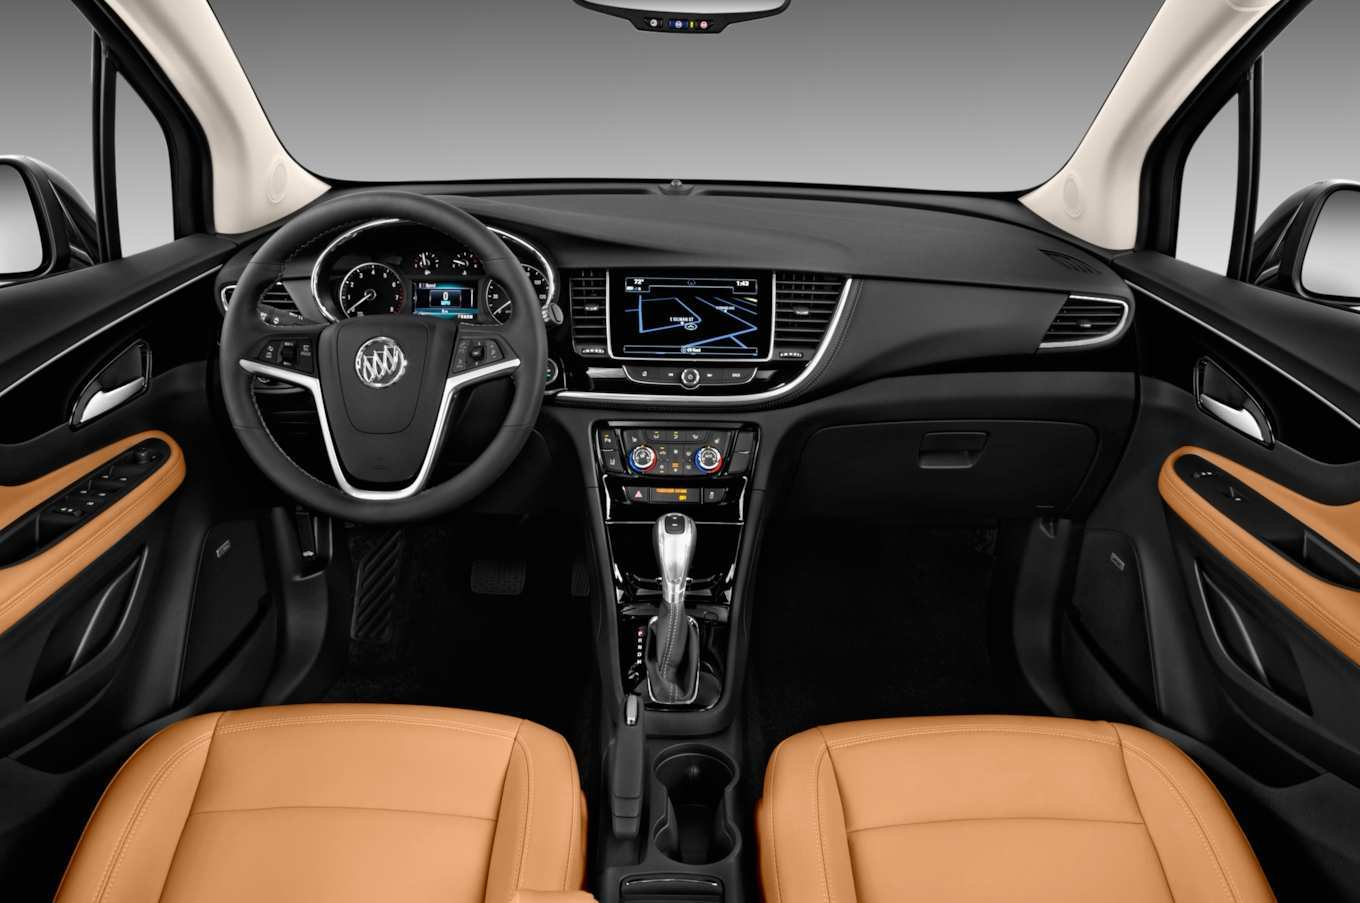 47 Concept of The Buick Encore 2019 New Review Review with The Buick Encore 2019 New Review